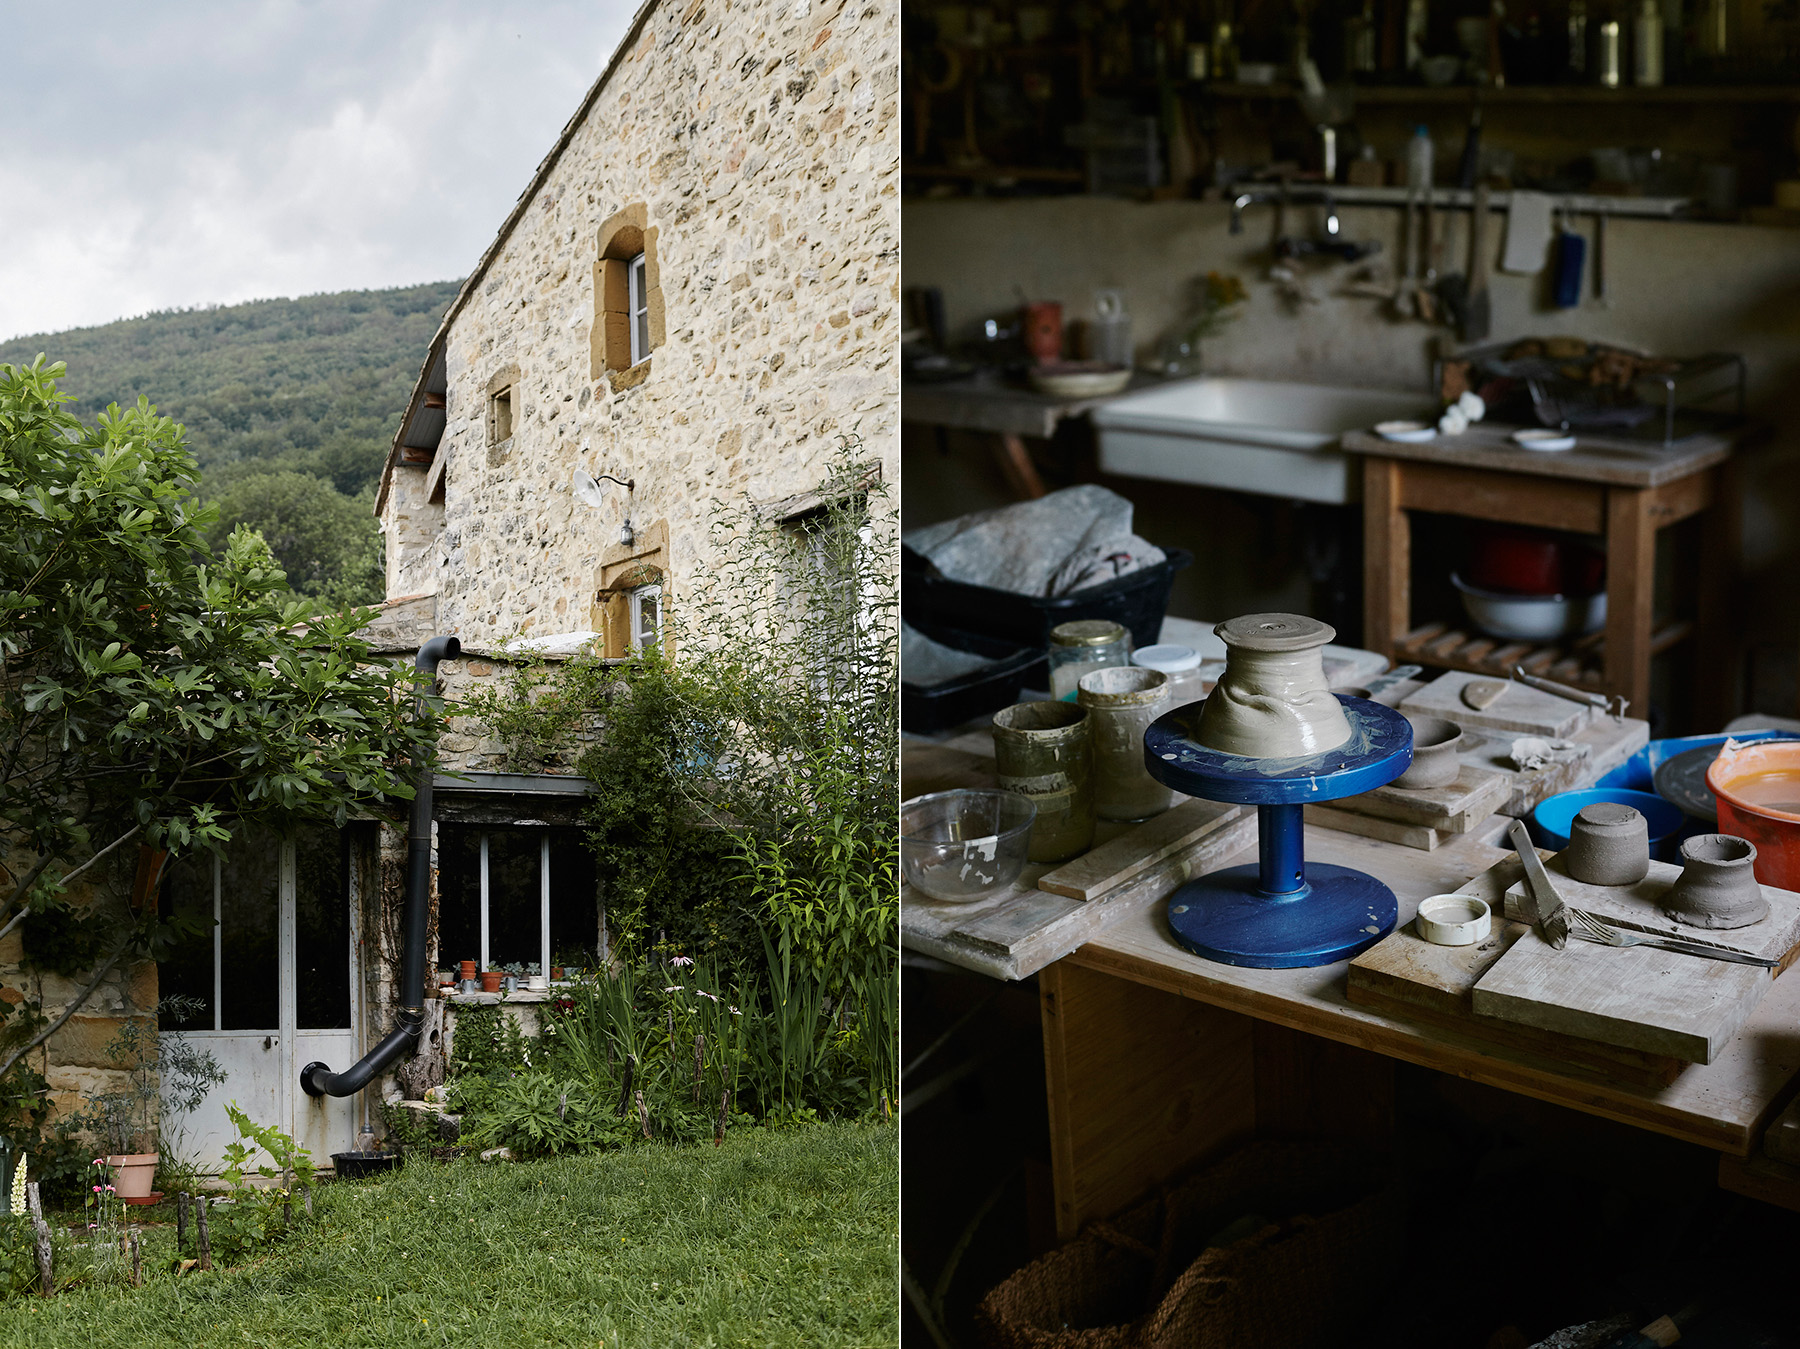 LEFT: Exterior of the atelier, south elevation. RIGHT: Interior of the atelier, working with clay.